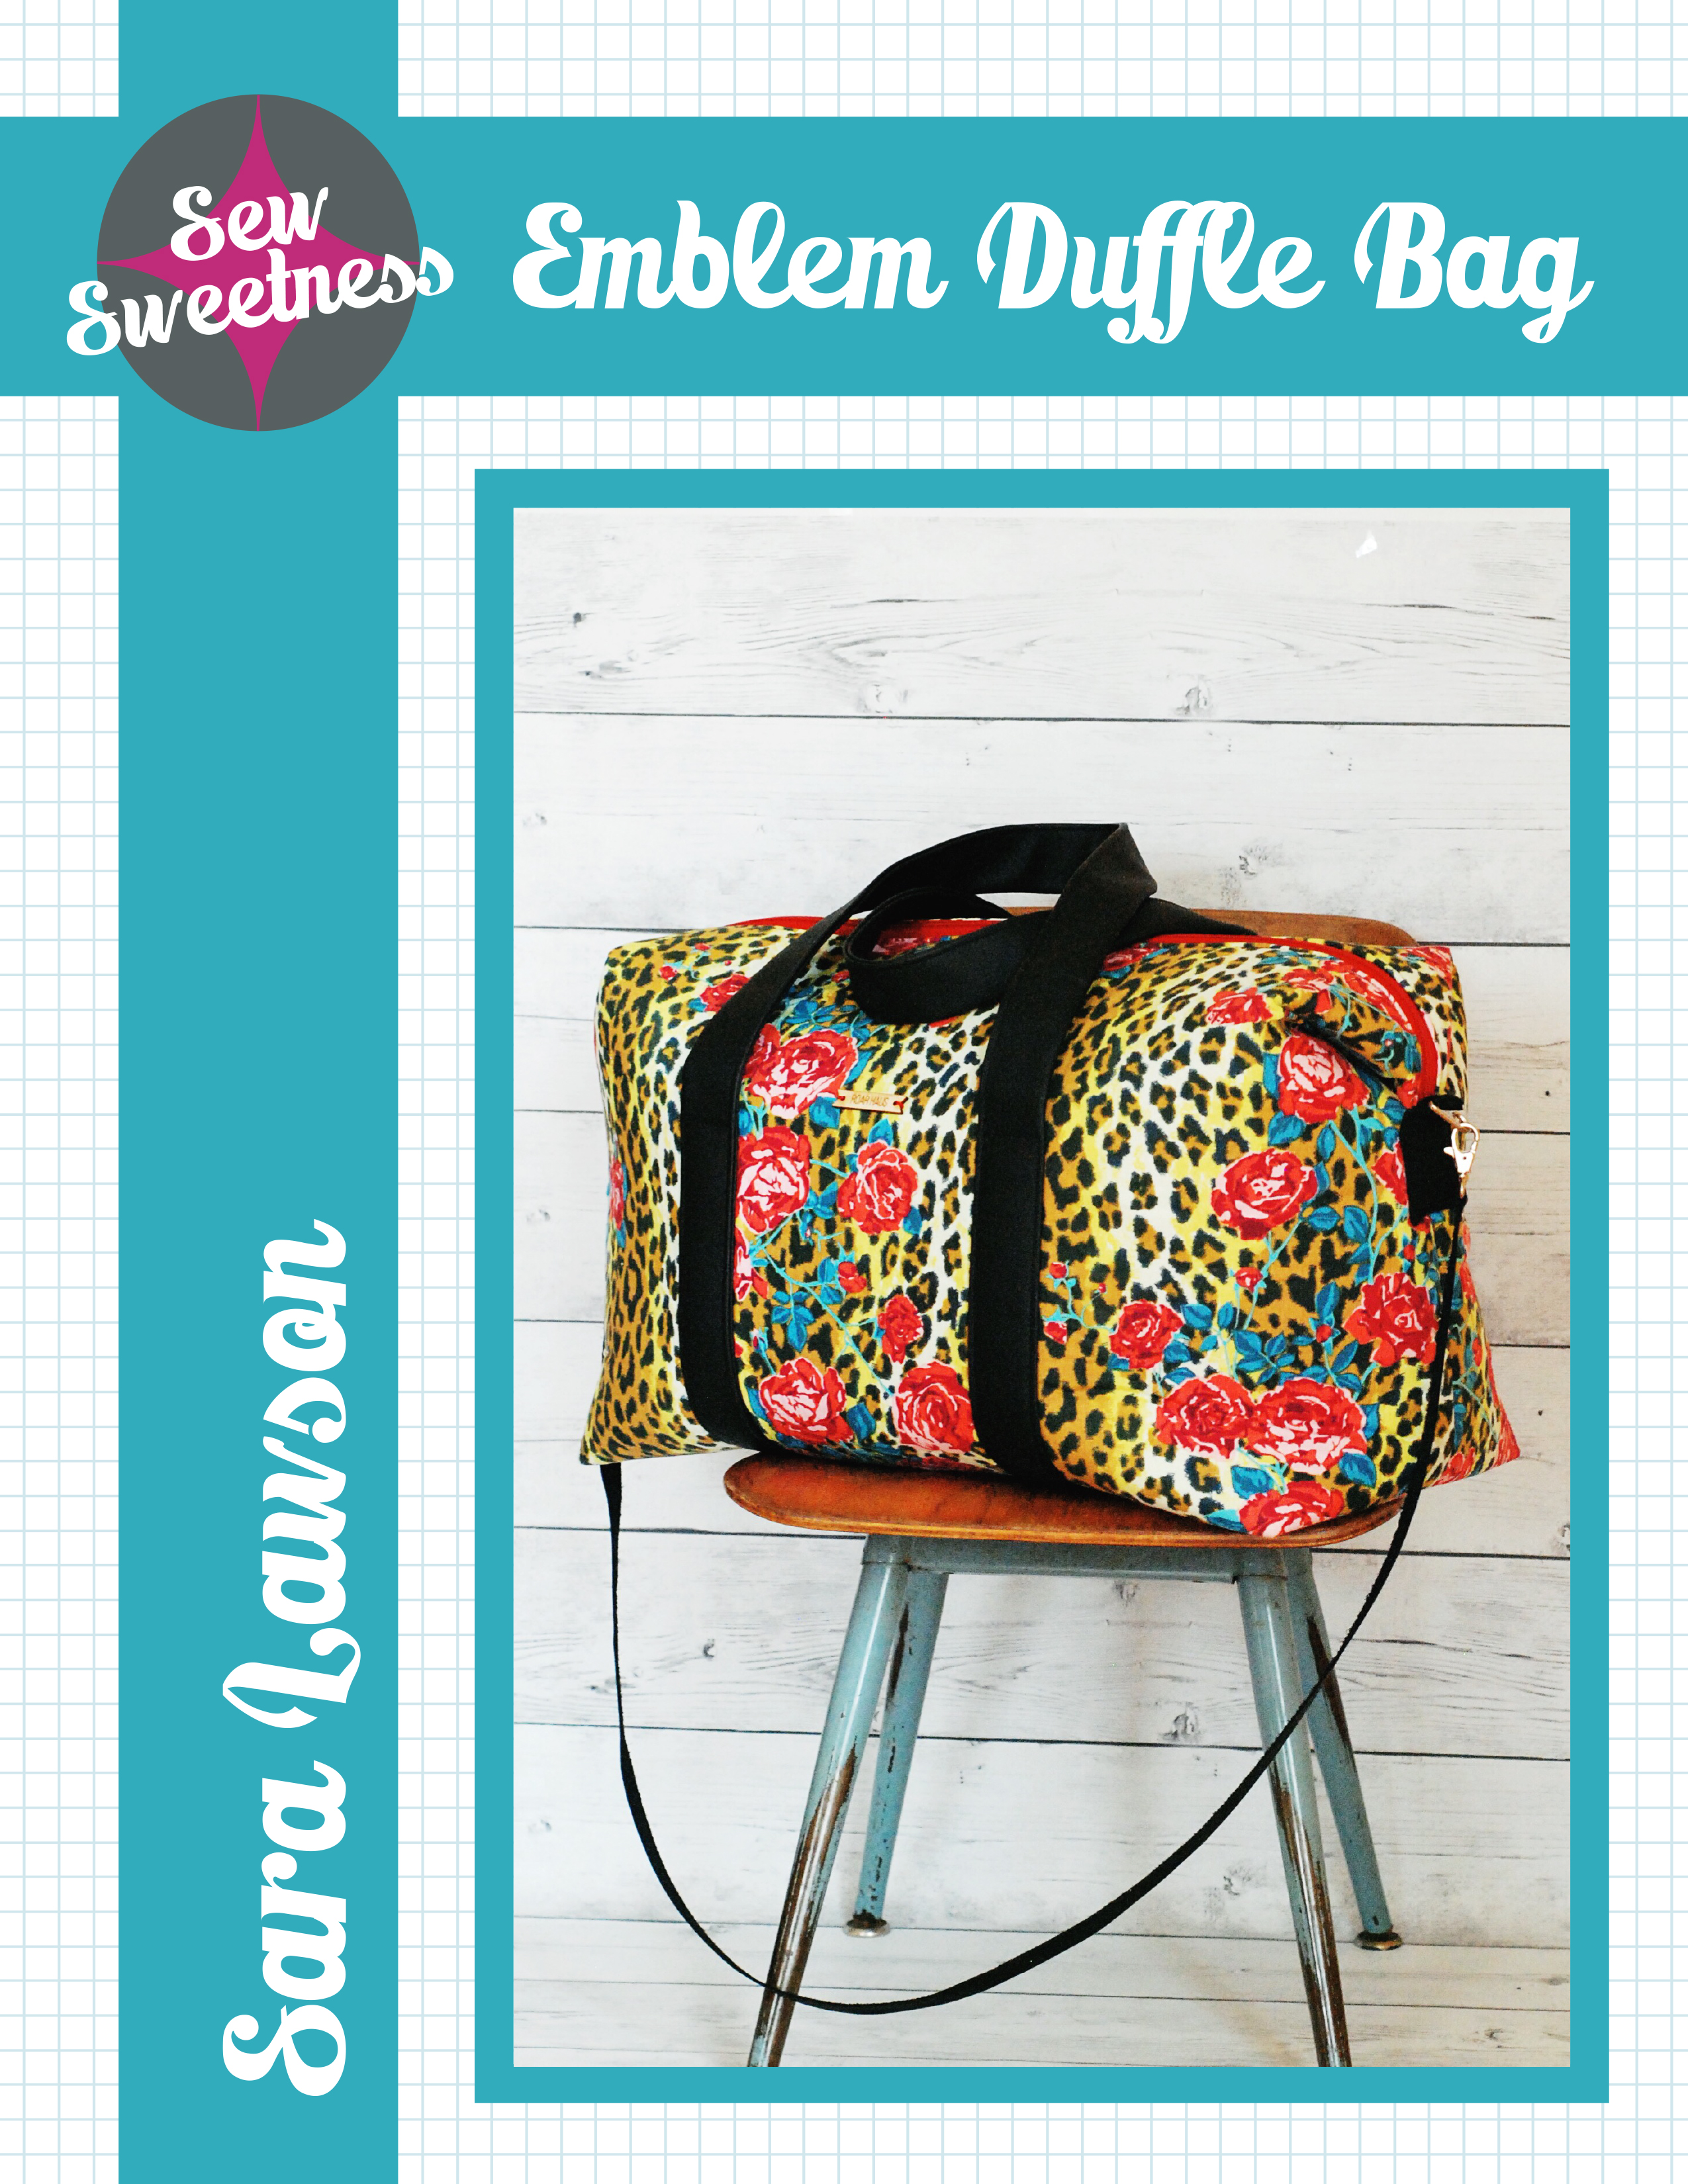 Sew Sweetness Emblem Duffle Bag sewing pattern